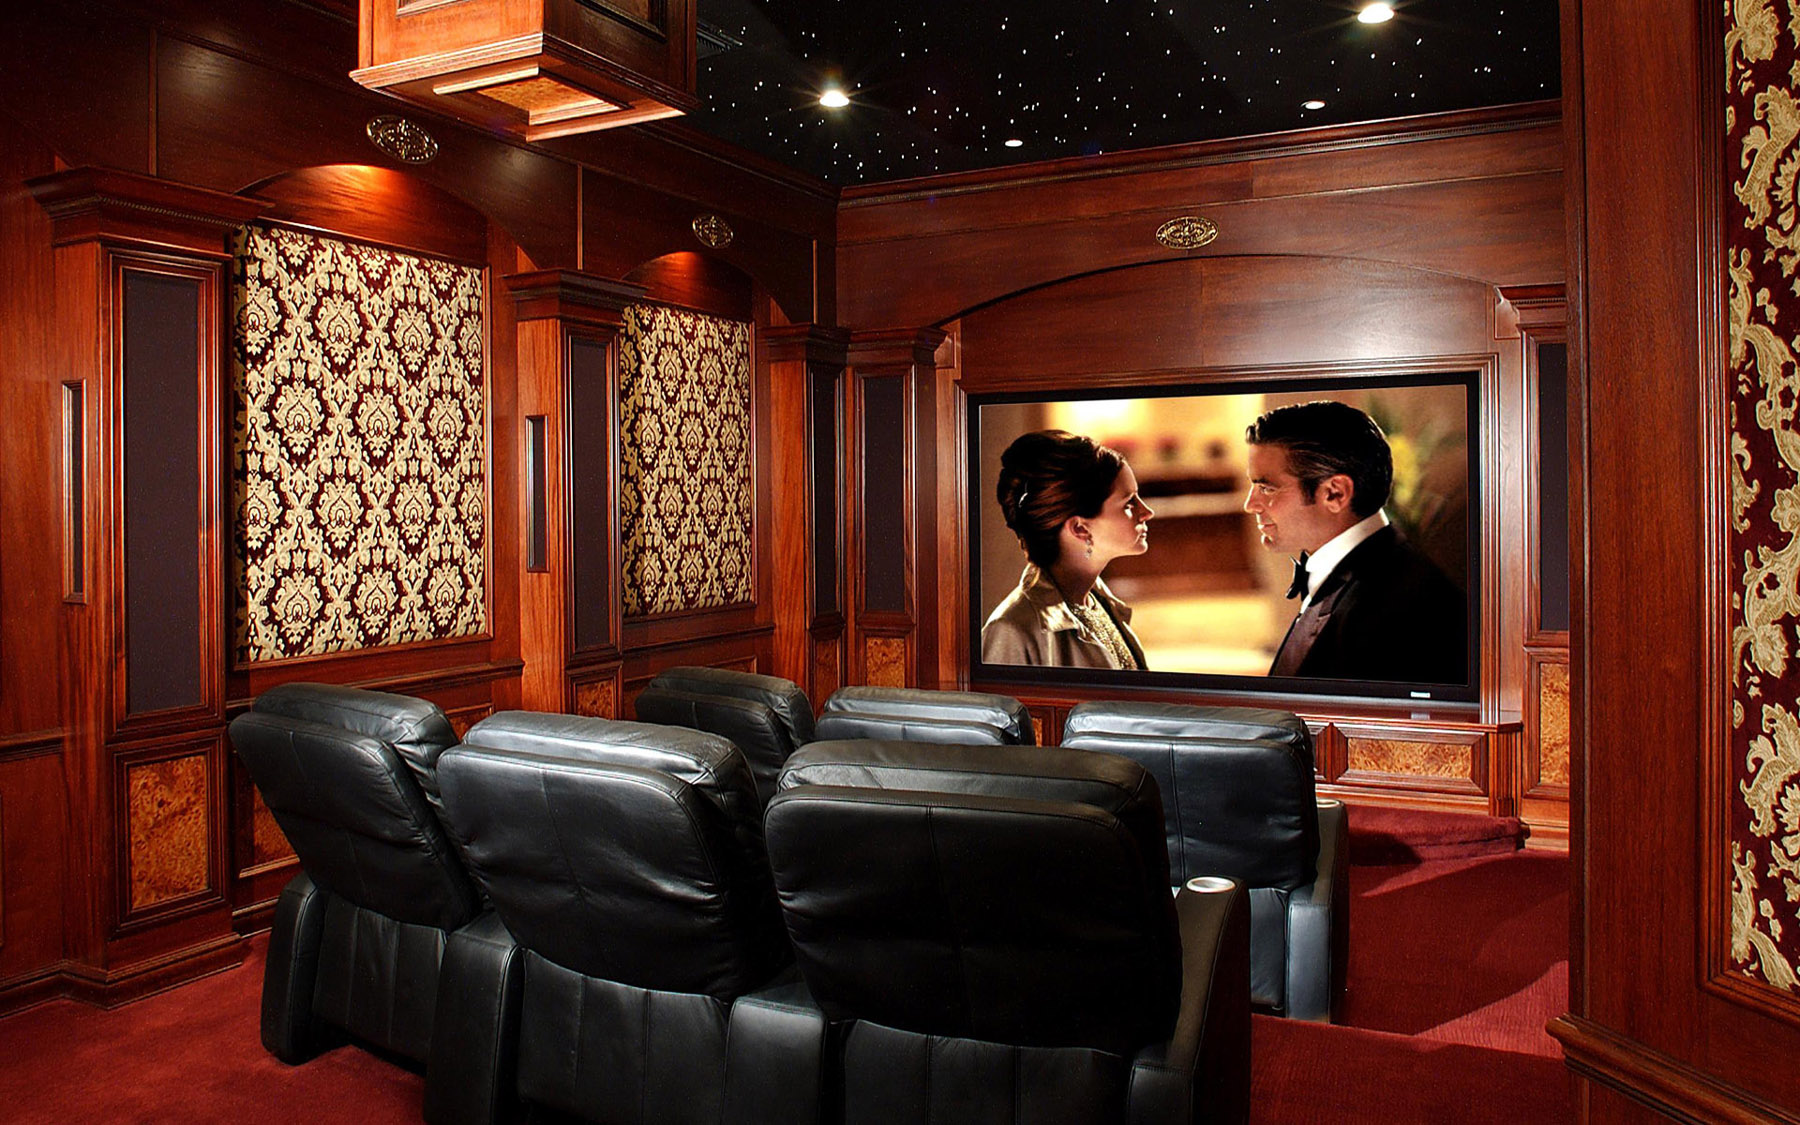 Hd home theater 23795 indoor home still life hd home theater 23795 altavistaventures Images